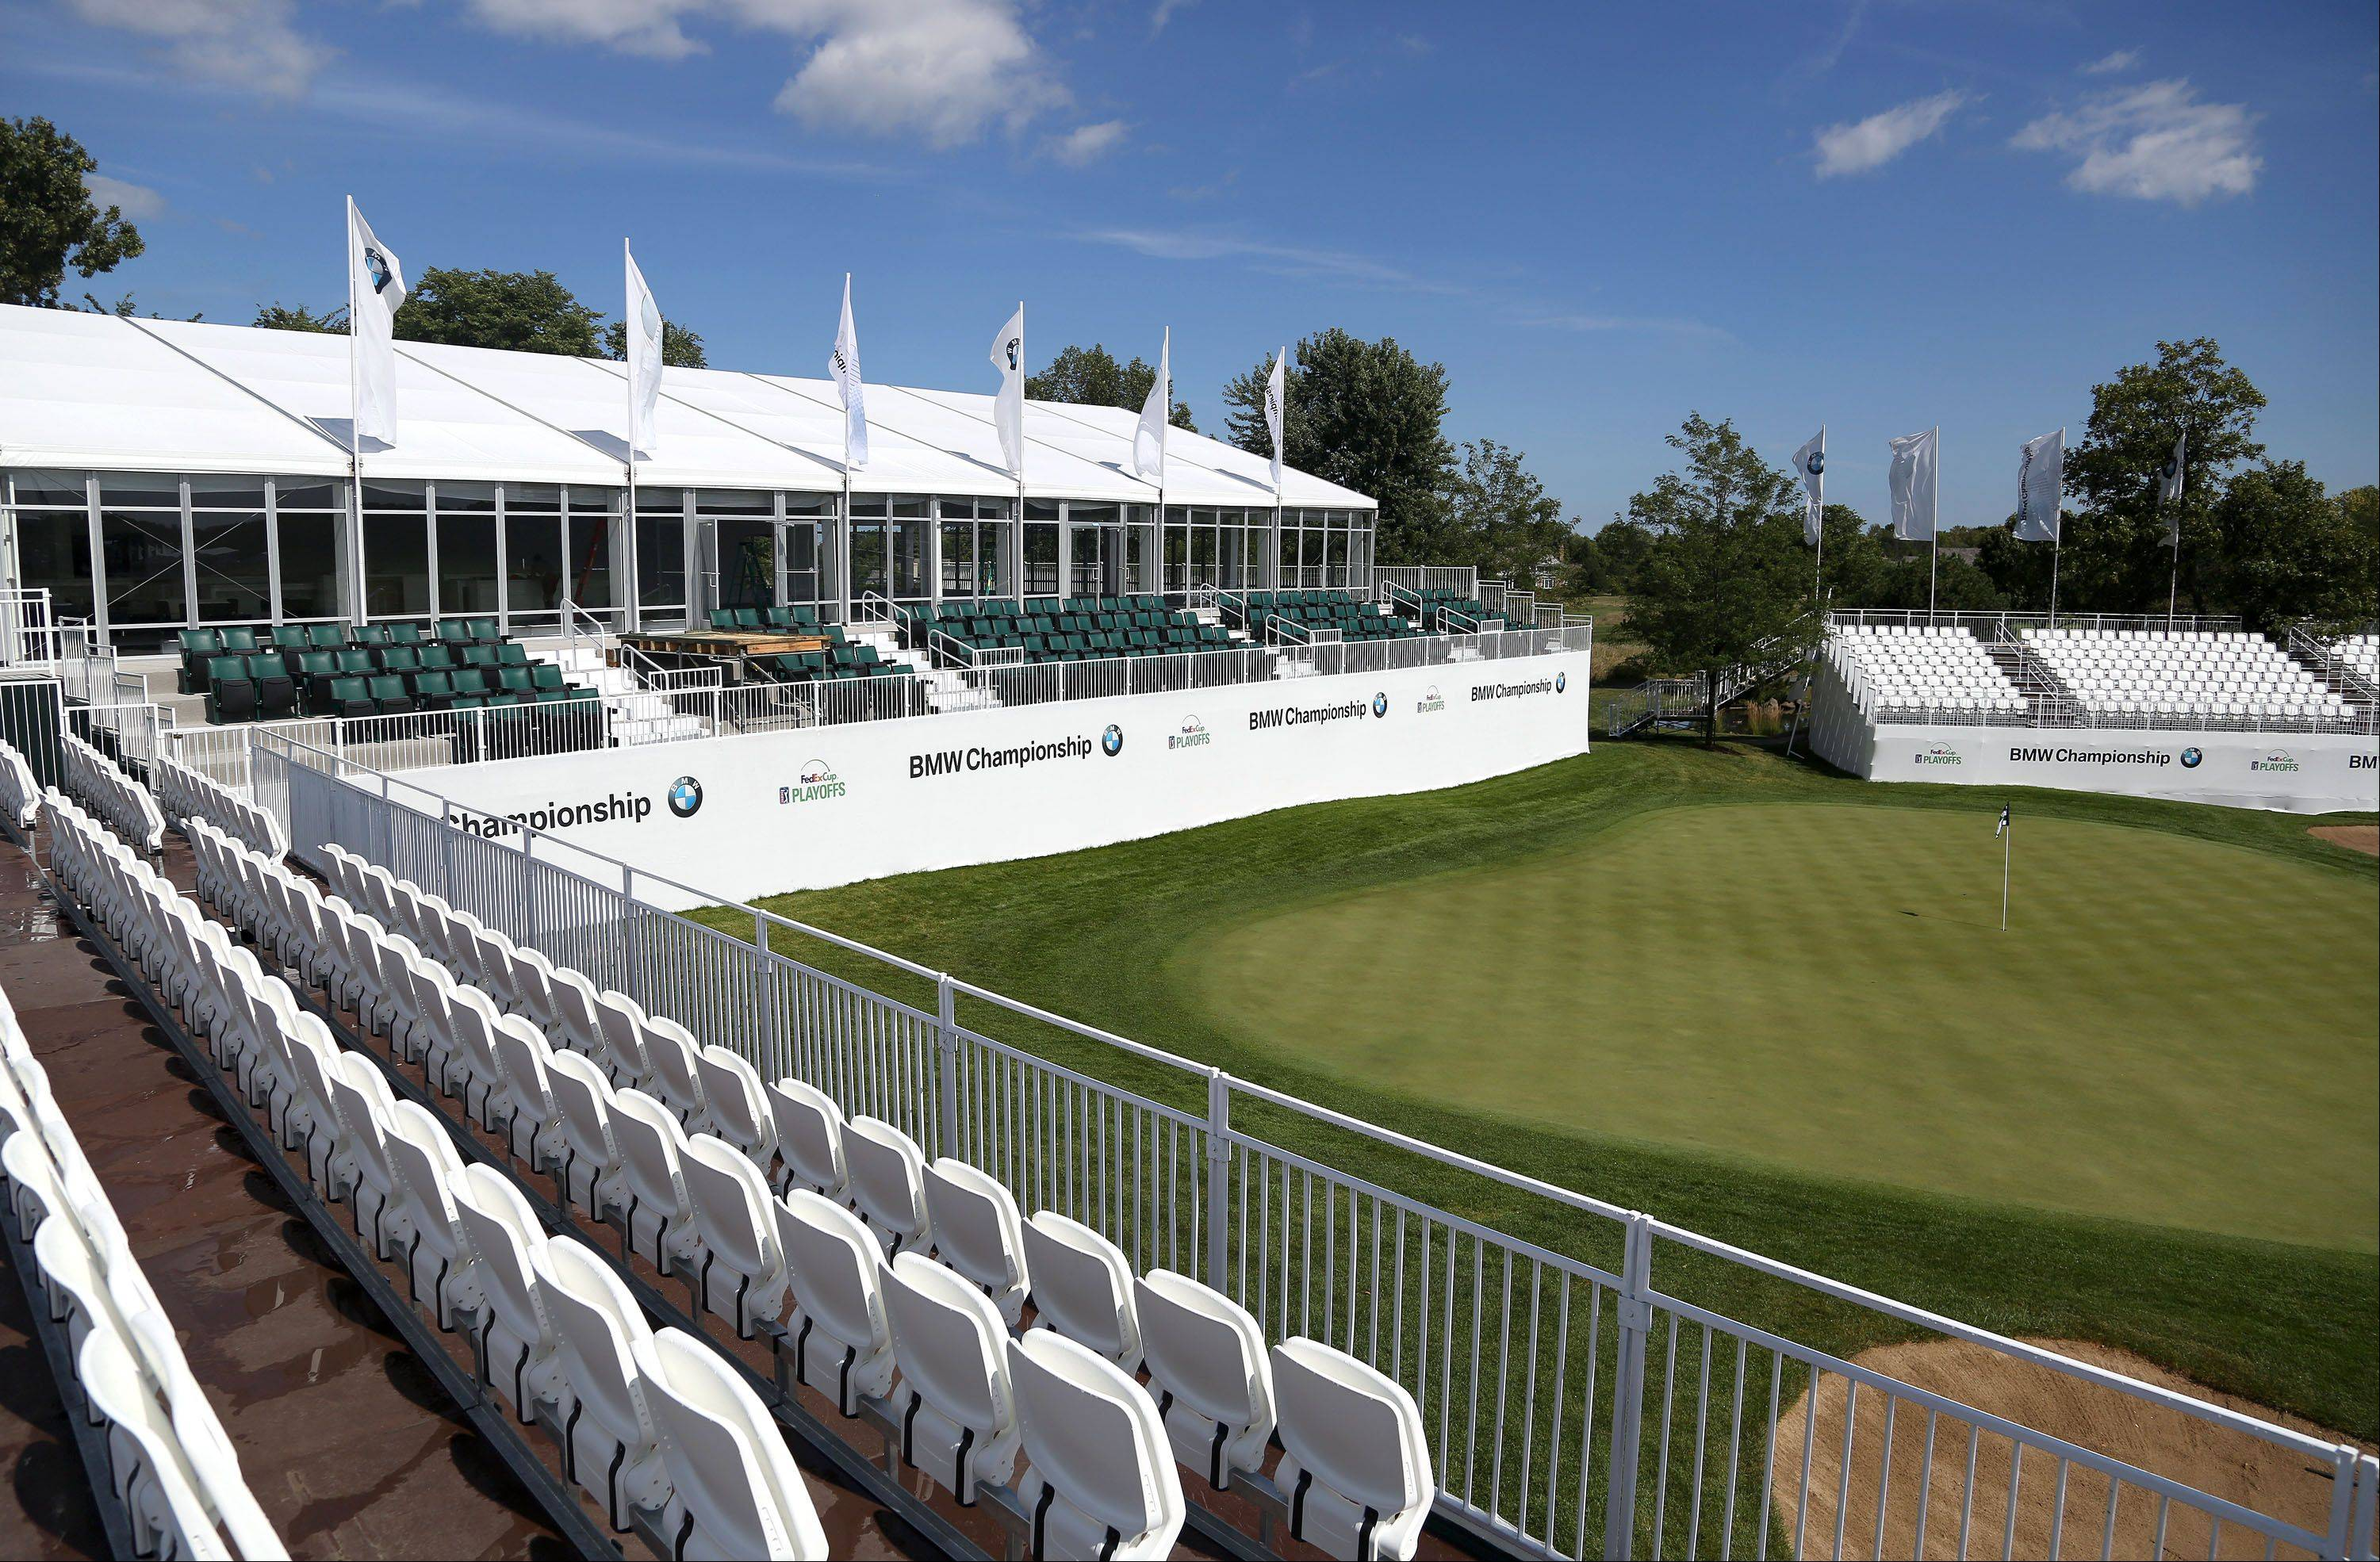 A corporate hospitality chalet offers a prime view of the 18th green at Conway Farms in Lake Forest in advance of the BMW Championship tournament, which kicks off Thursday.